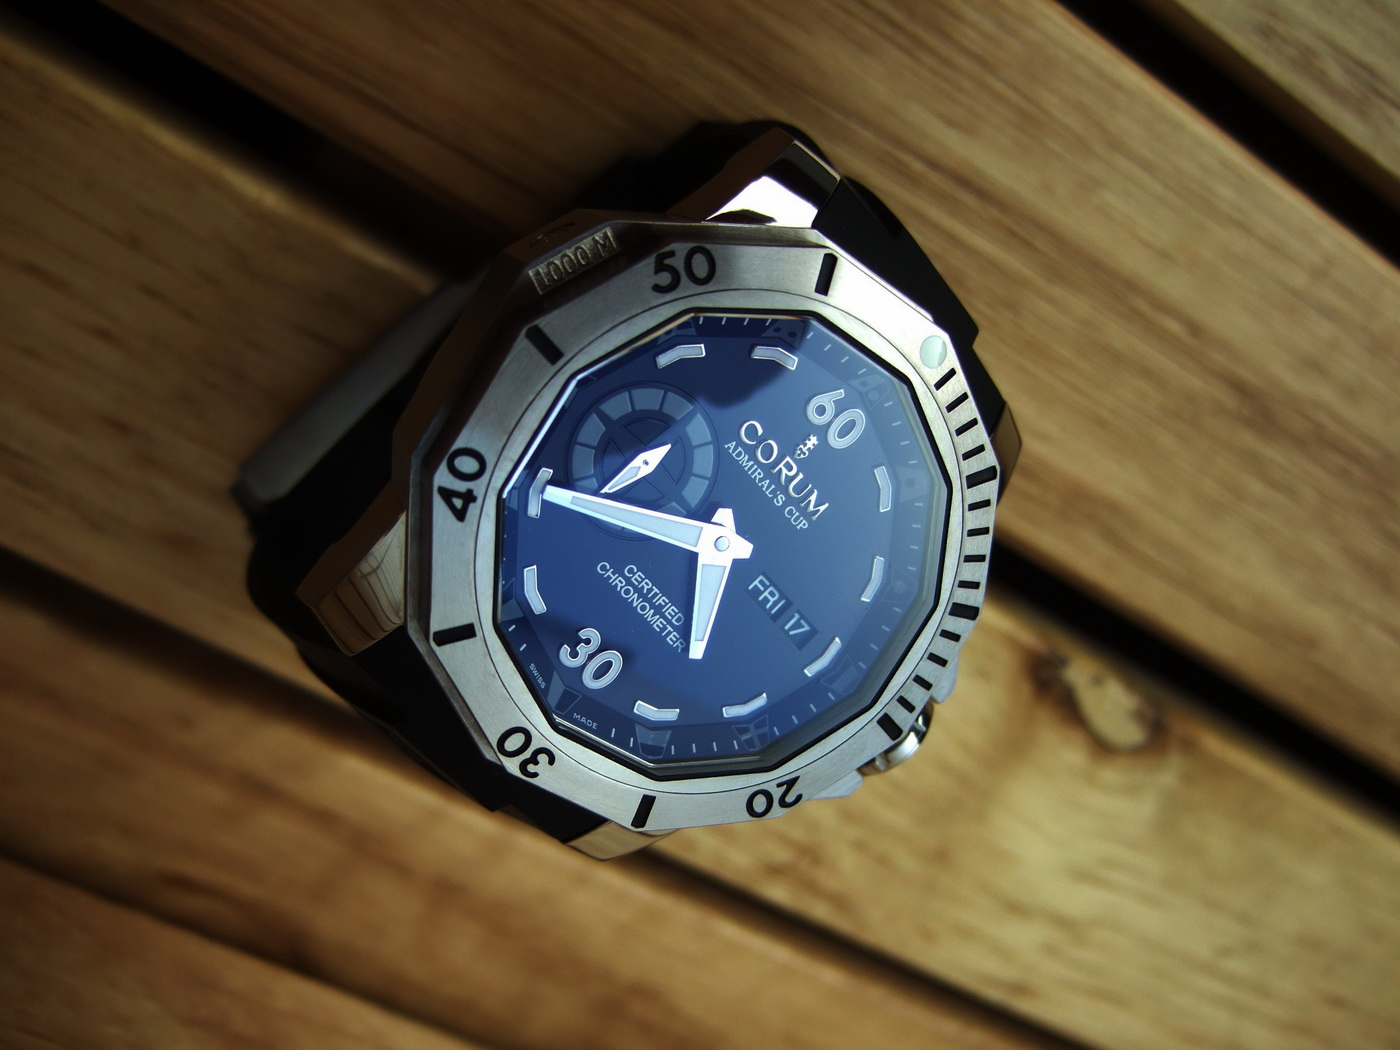 The 5 Characteristics of a Good Dive Watch